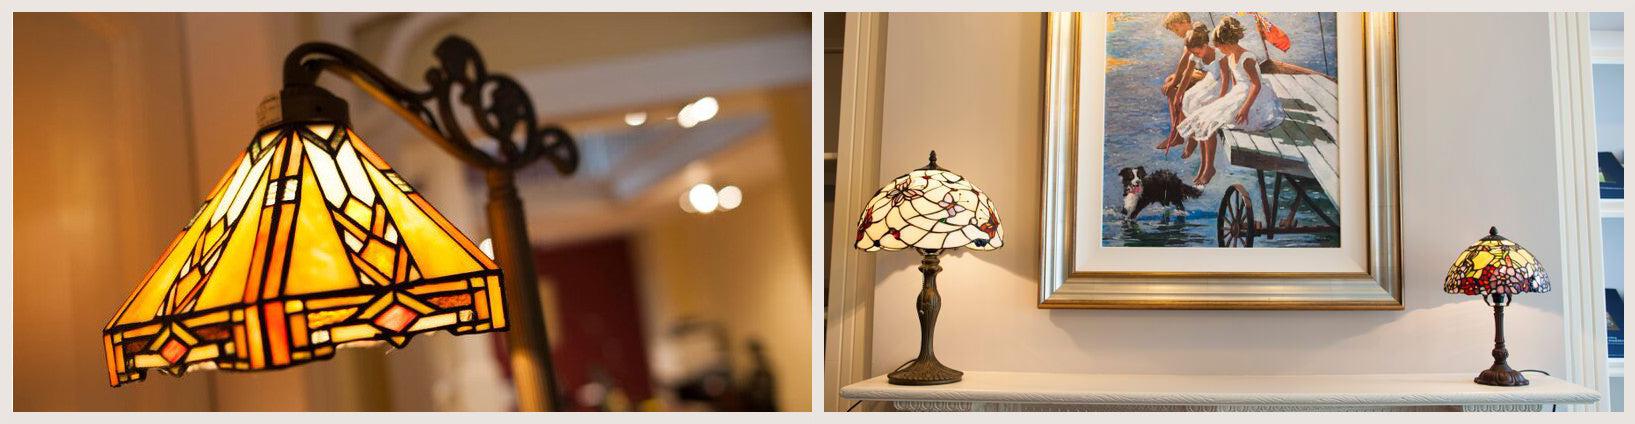 Tiffany floor lamps tagged beige tiffany lighting direct we think we have one of the largest collections of tiffany floor lamps in the uk and we are proud of the quality and choice we have mozeypictures Images